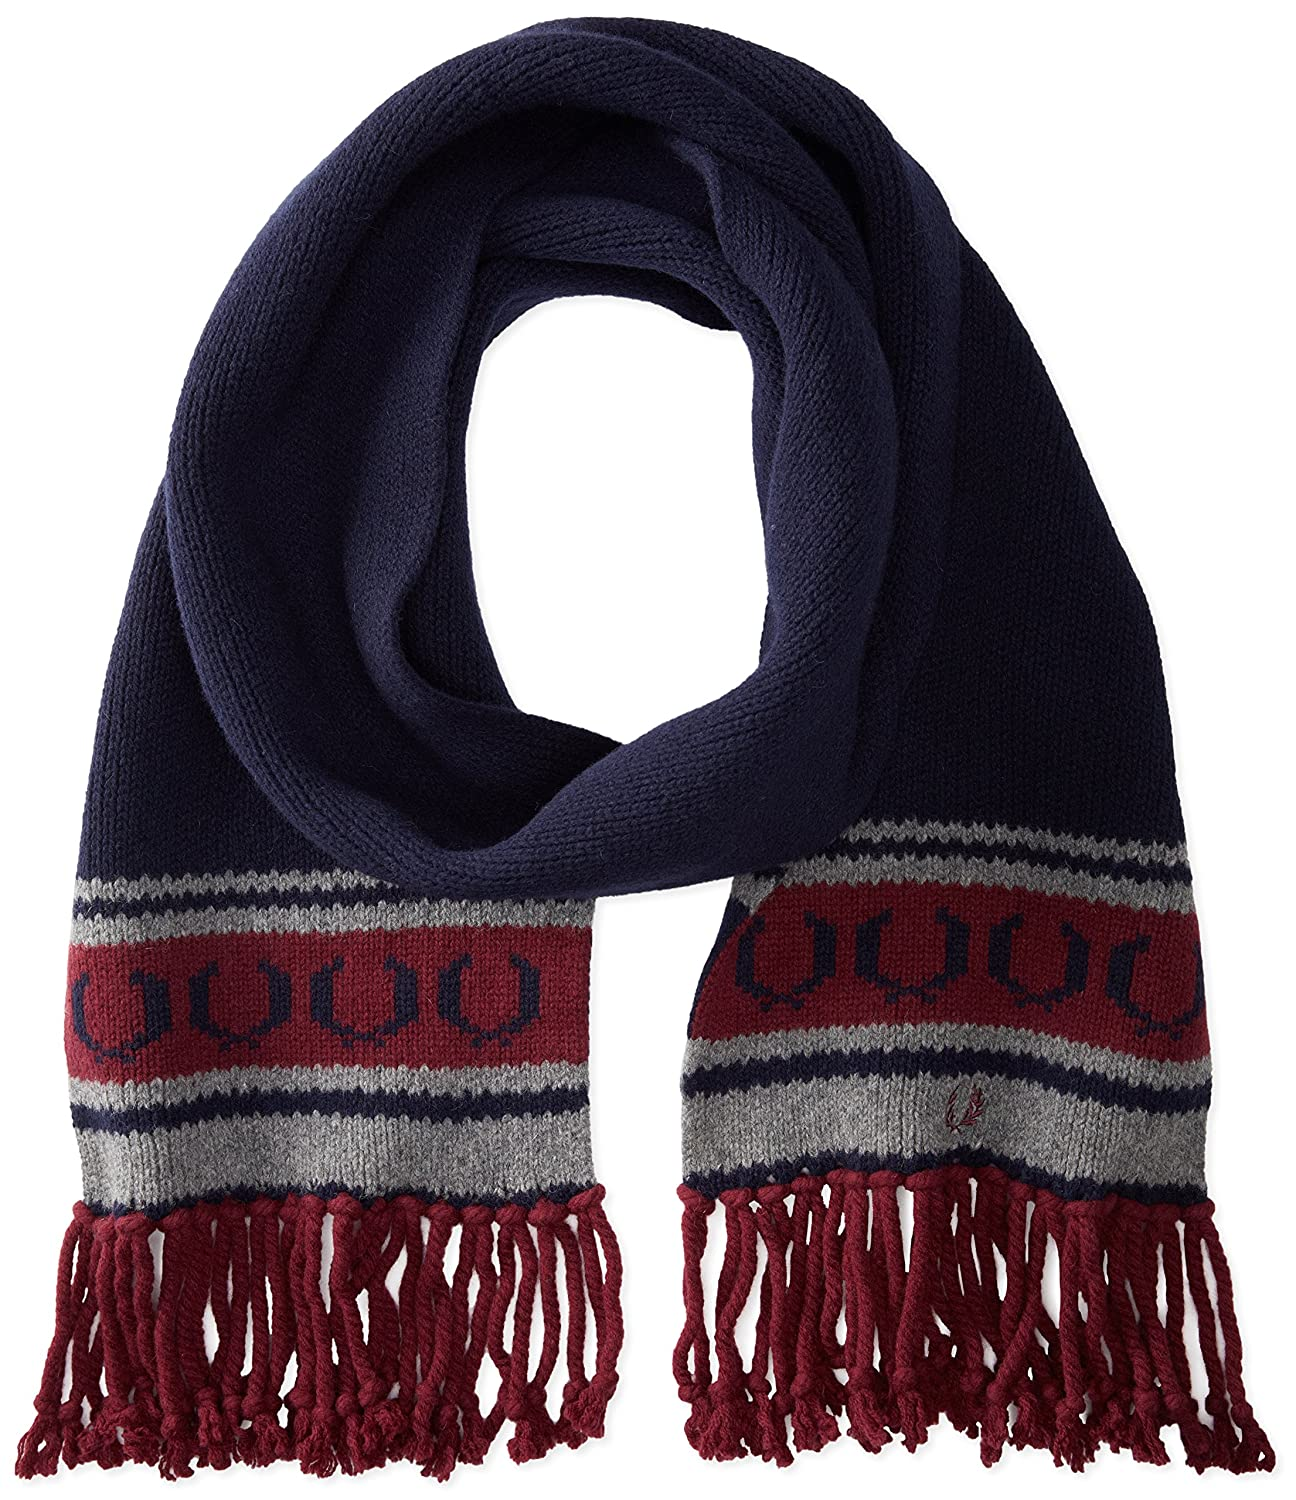 Fred Perry Men's Fairisle Knit Scarf Navy One Size C5105